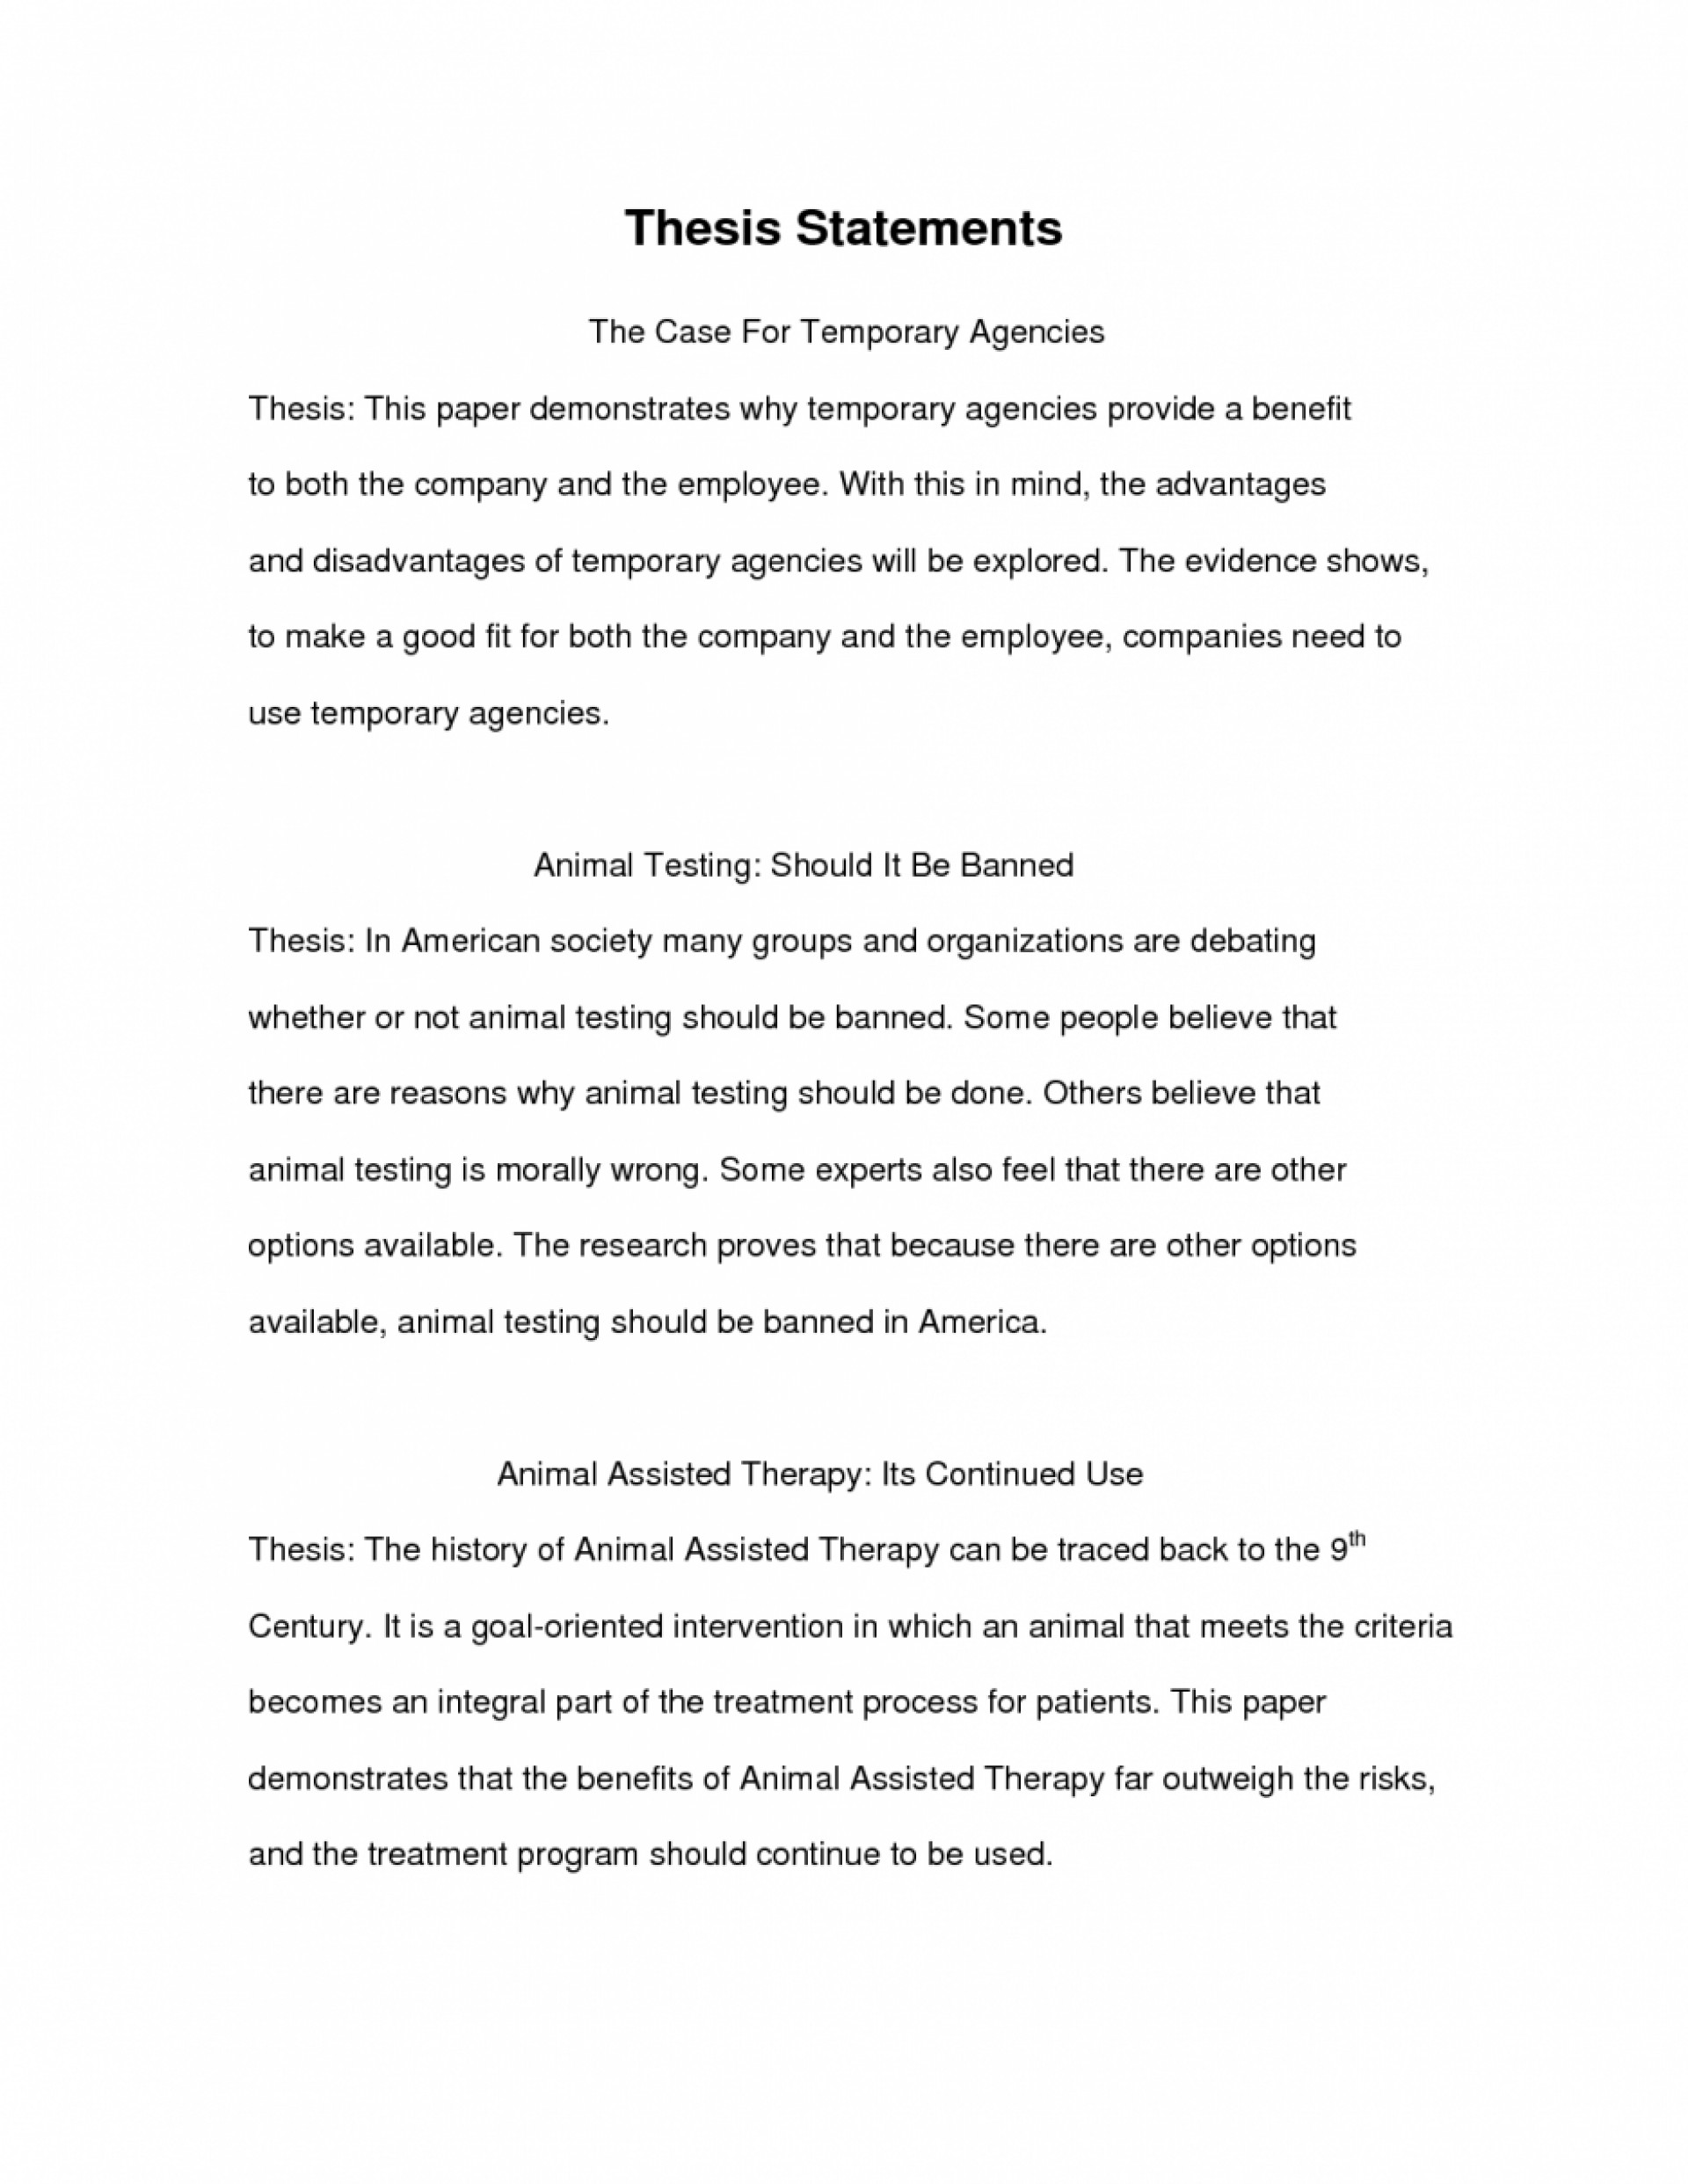 006 Writing Thesis Statements For Comparative Essays Historyamples Image Best Photos Research Paper How To Write Statement Essay Synthesis Personal Narrative Descriptive Persuasive 936x1211 Unique A An Exploratory Opinion Informative 1920